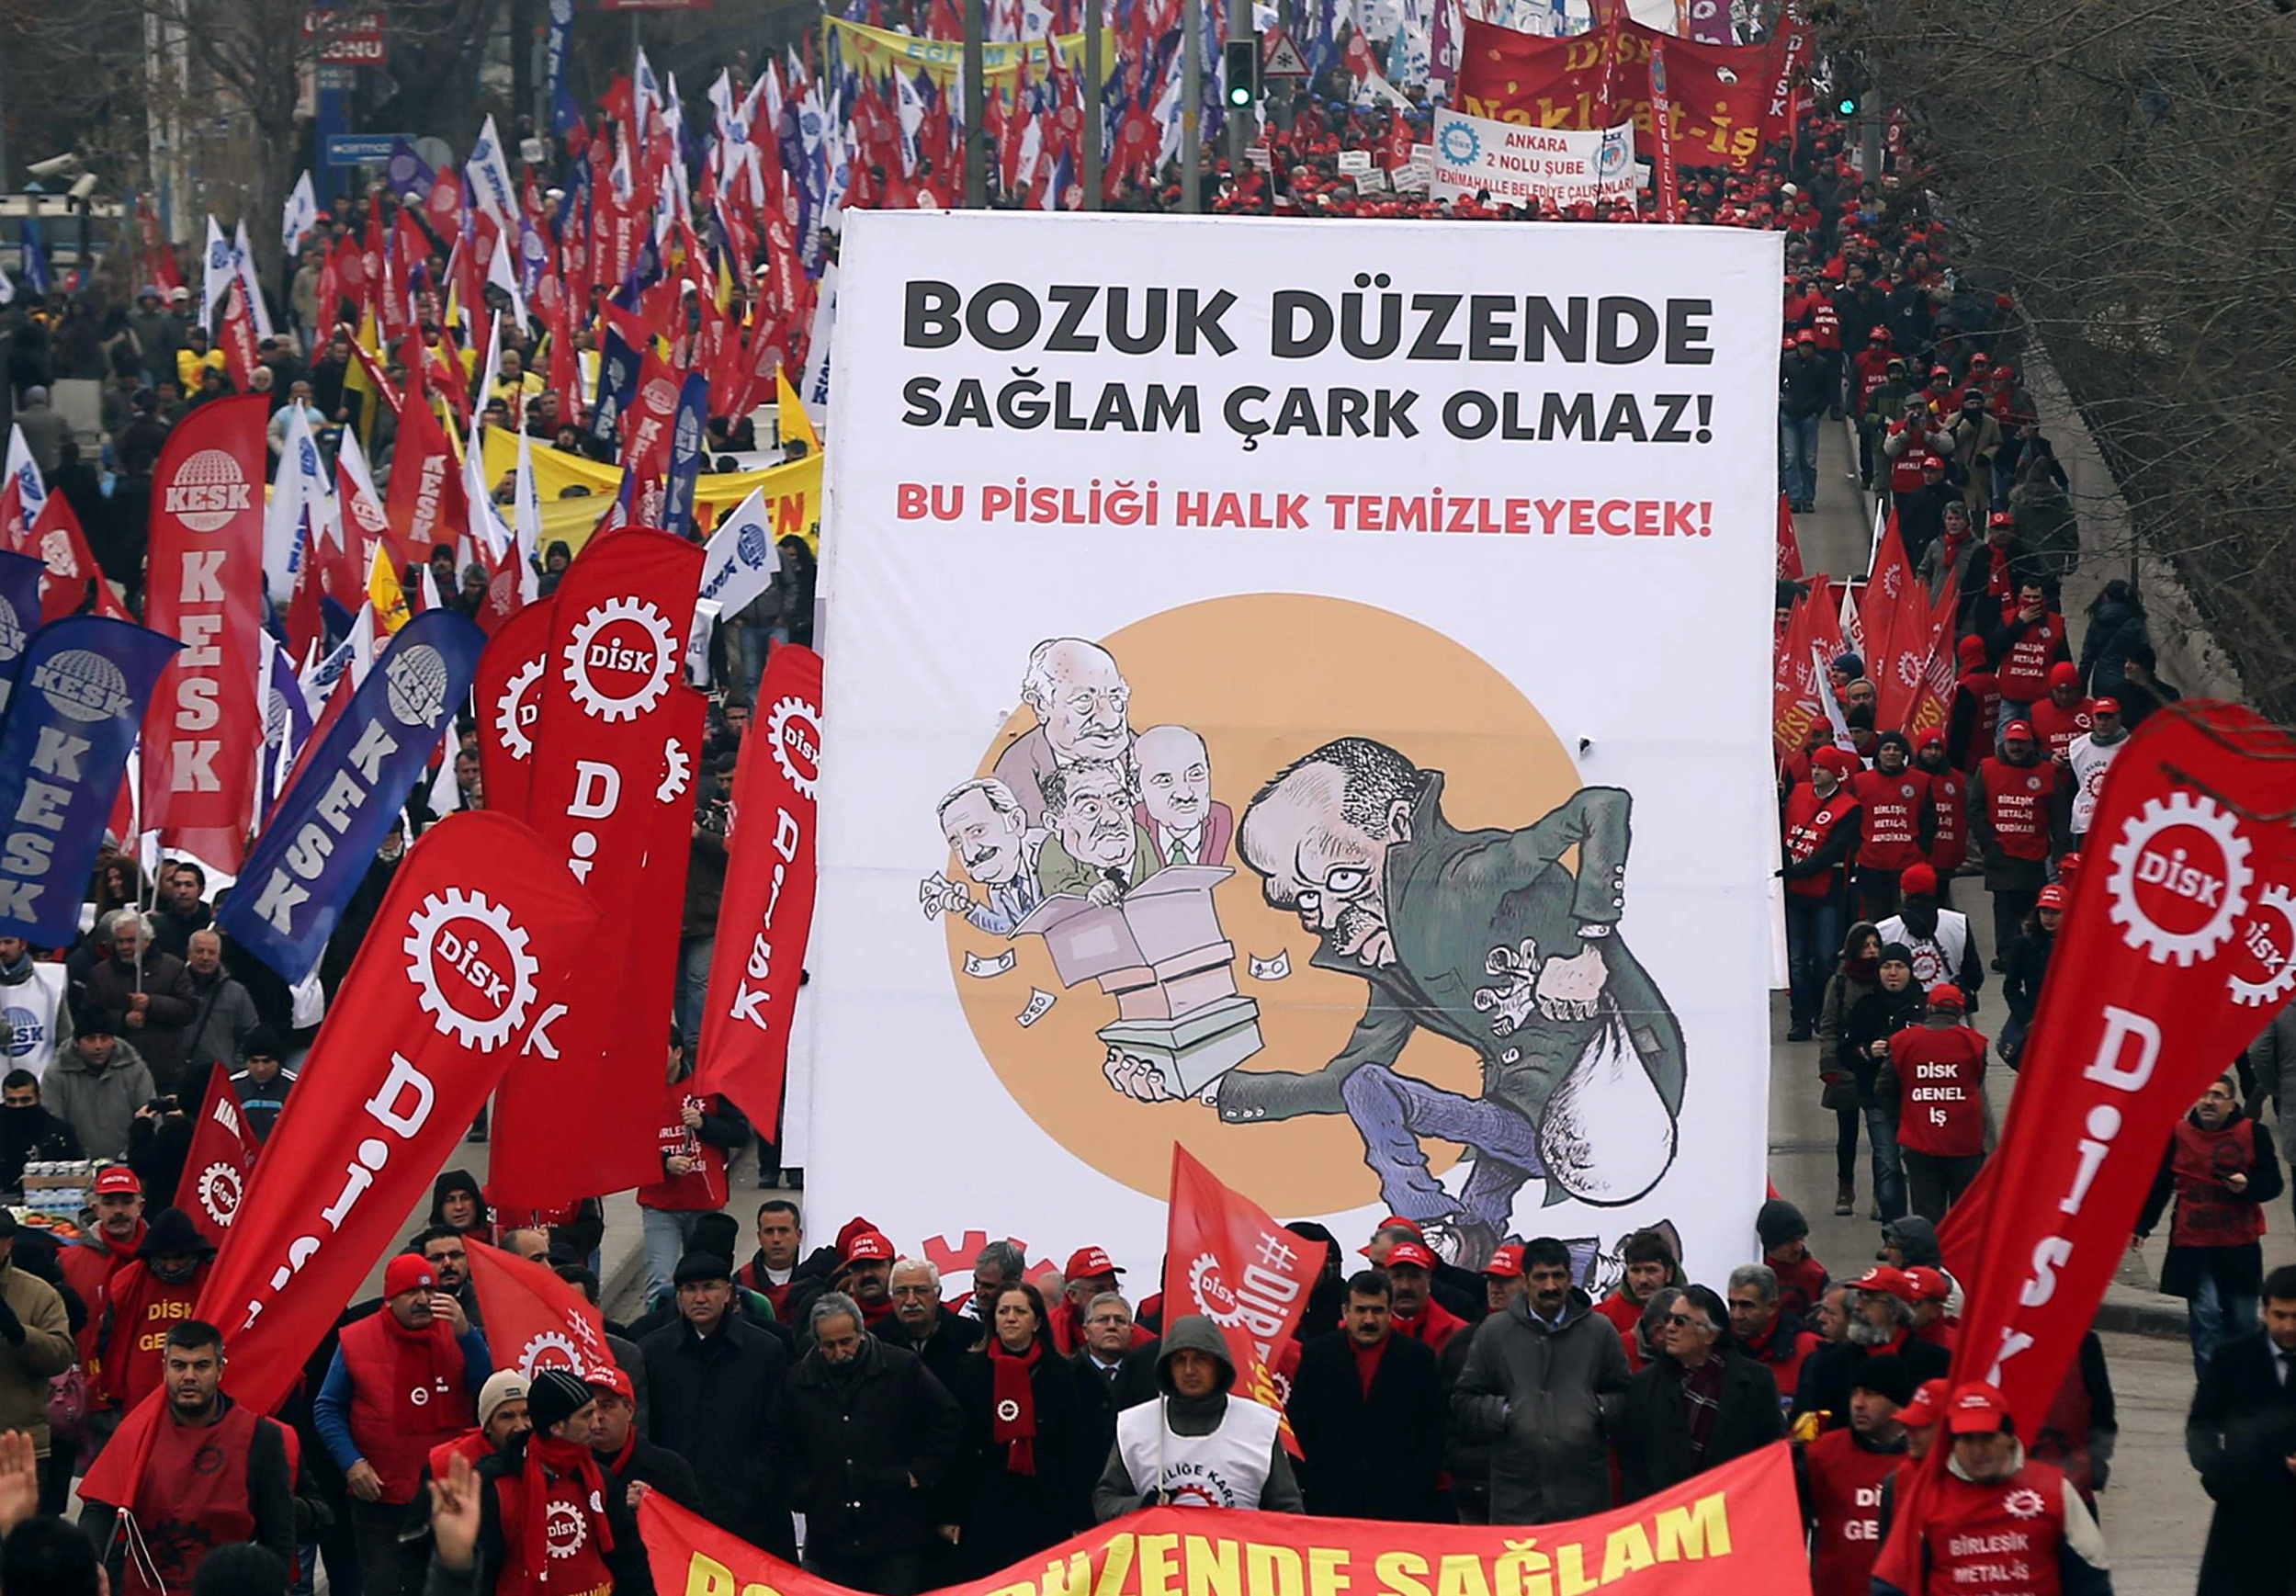 """Protesters hold a placard with a cartoon depicting Turkish Prime Minister Recep Tayyip Erdogan and his three cabinet ministers who resigned under a huge graft scandal during an anti-corruption protest in Ankara on January 11, 2014. Tens of thousands of Turkish demonstrators took to the streets in capital Ankara on January 11 in protest against Prime Minister Recep Tayyip Erdogan's government, which has been rocked by a vast corruption probe. Placard reads : """"No one is clean if the whole system is corrupt"""".   (AFP PHOTO / ADEM ALTAN)"""